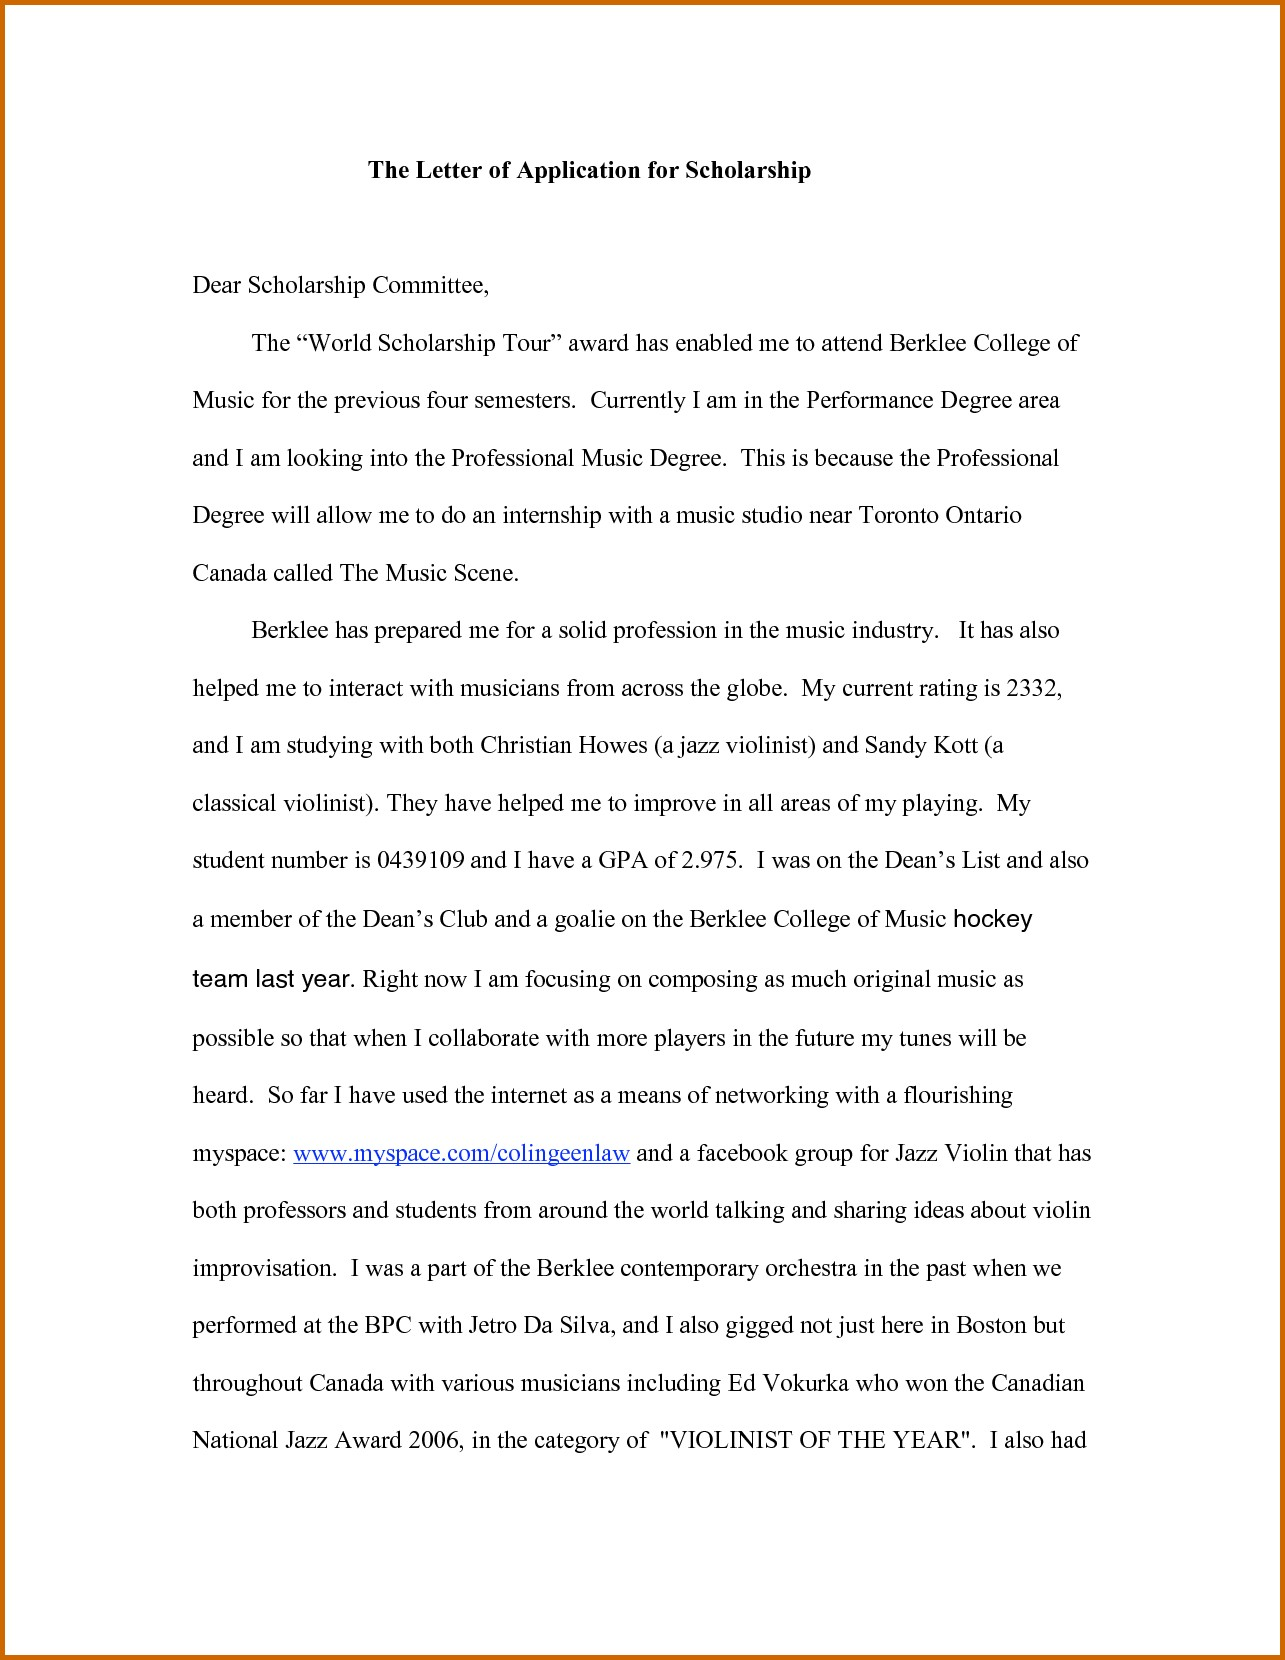 025 Essay Example Format Of Scholarship Selo Yogawithjo Co Introduction Sensational Sample College Essays For Writing Full